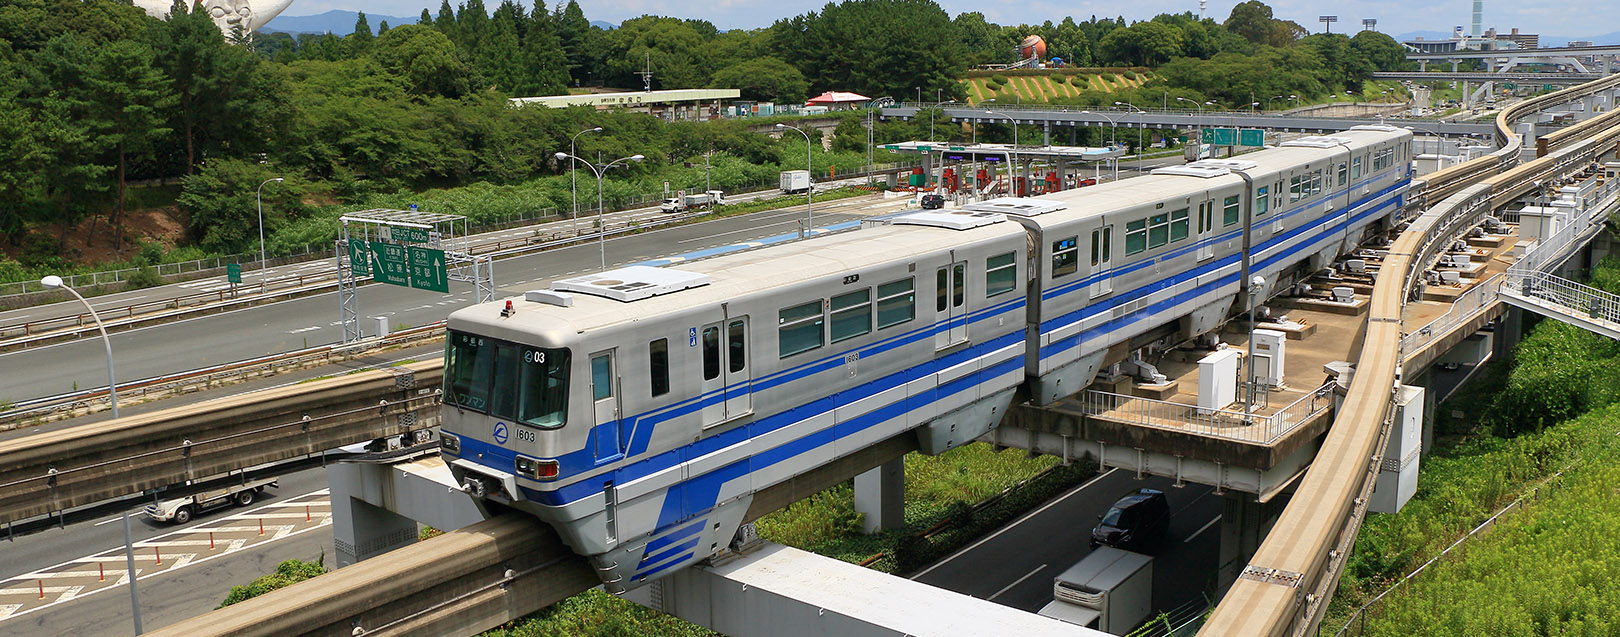 Bengal signs an MoU with Burn Standard for Kolkota monorail